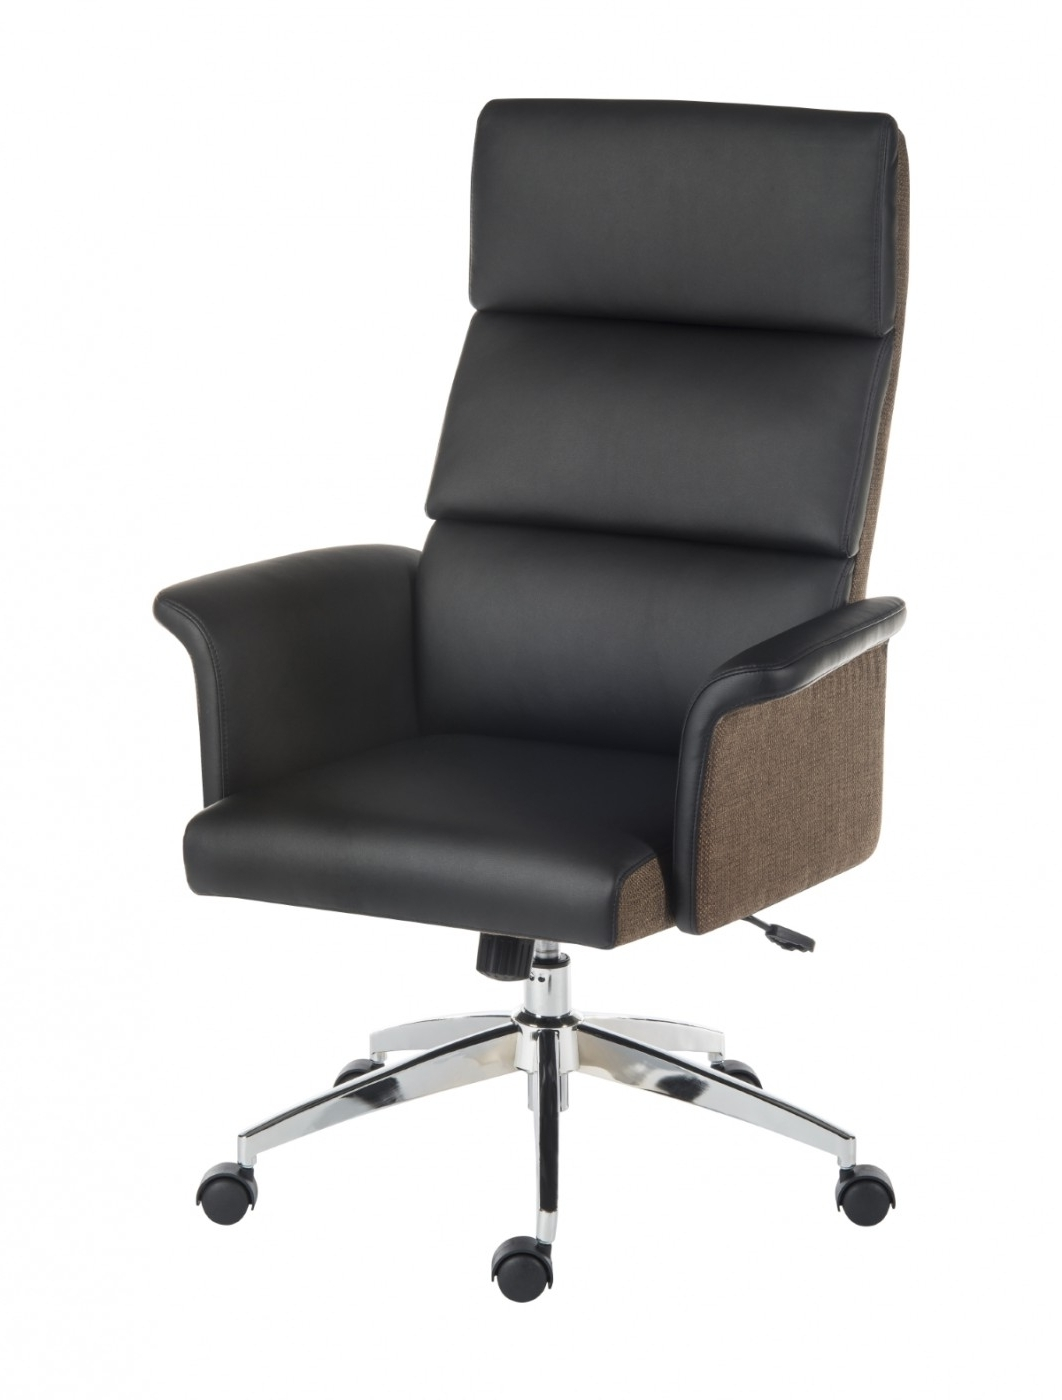 Executive Office Chairs Pertaining To Latest Office Chairs – Teknik Elegance High Back Executive Office Chair (Gallery 4 of 20)